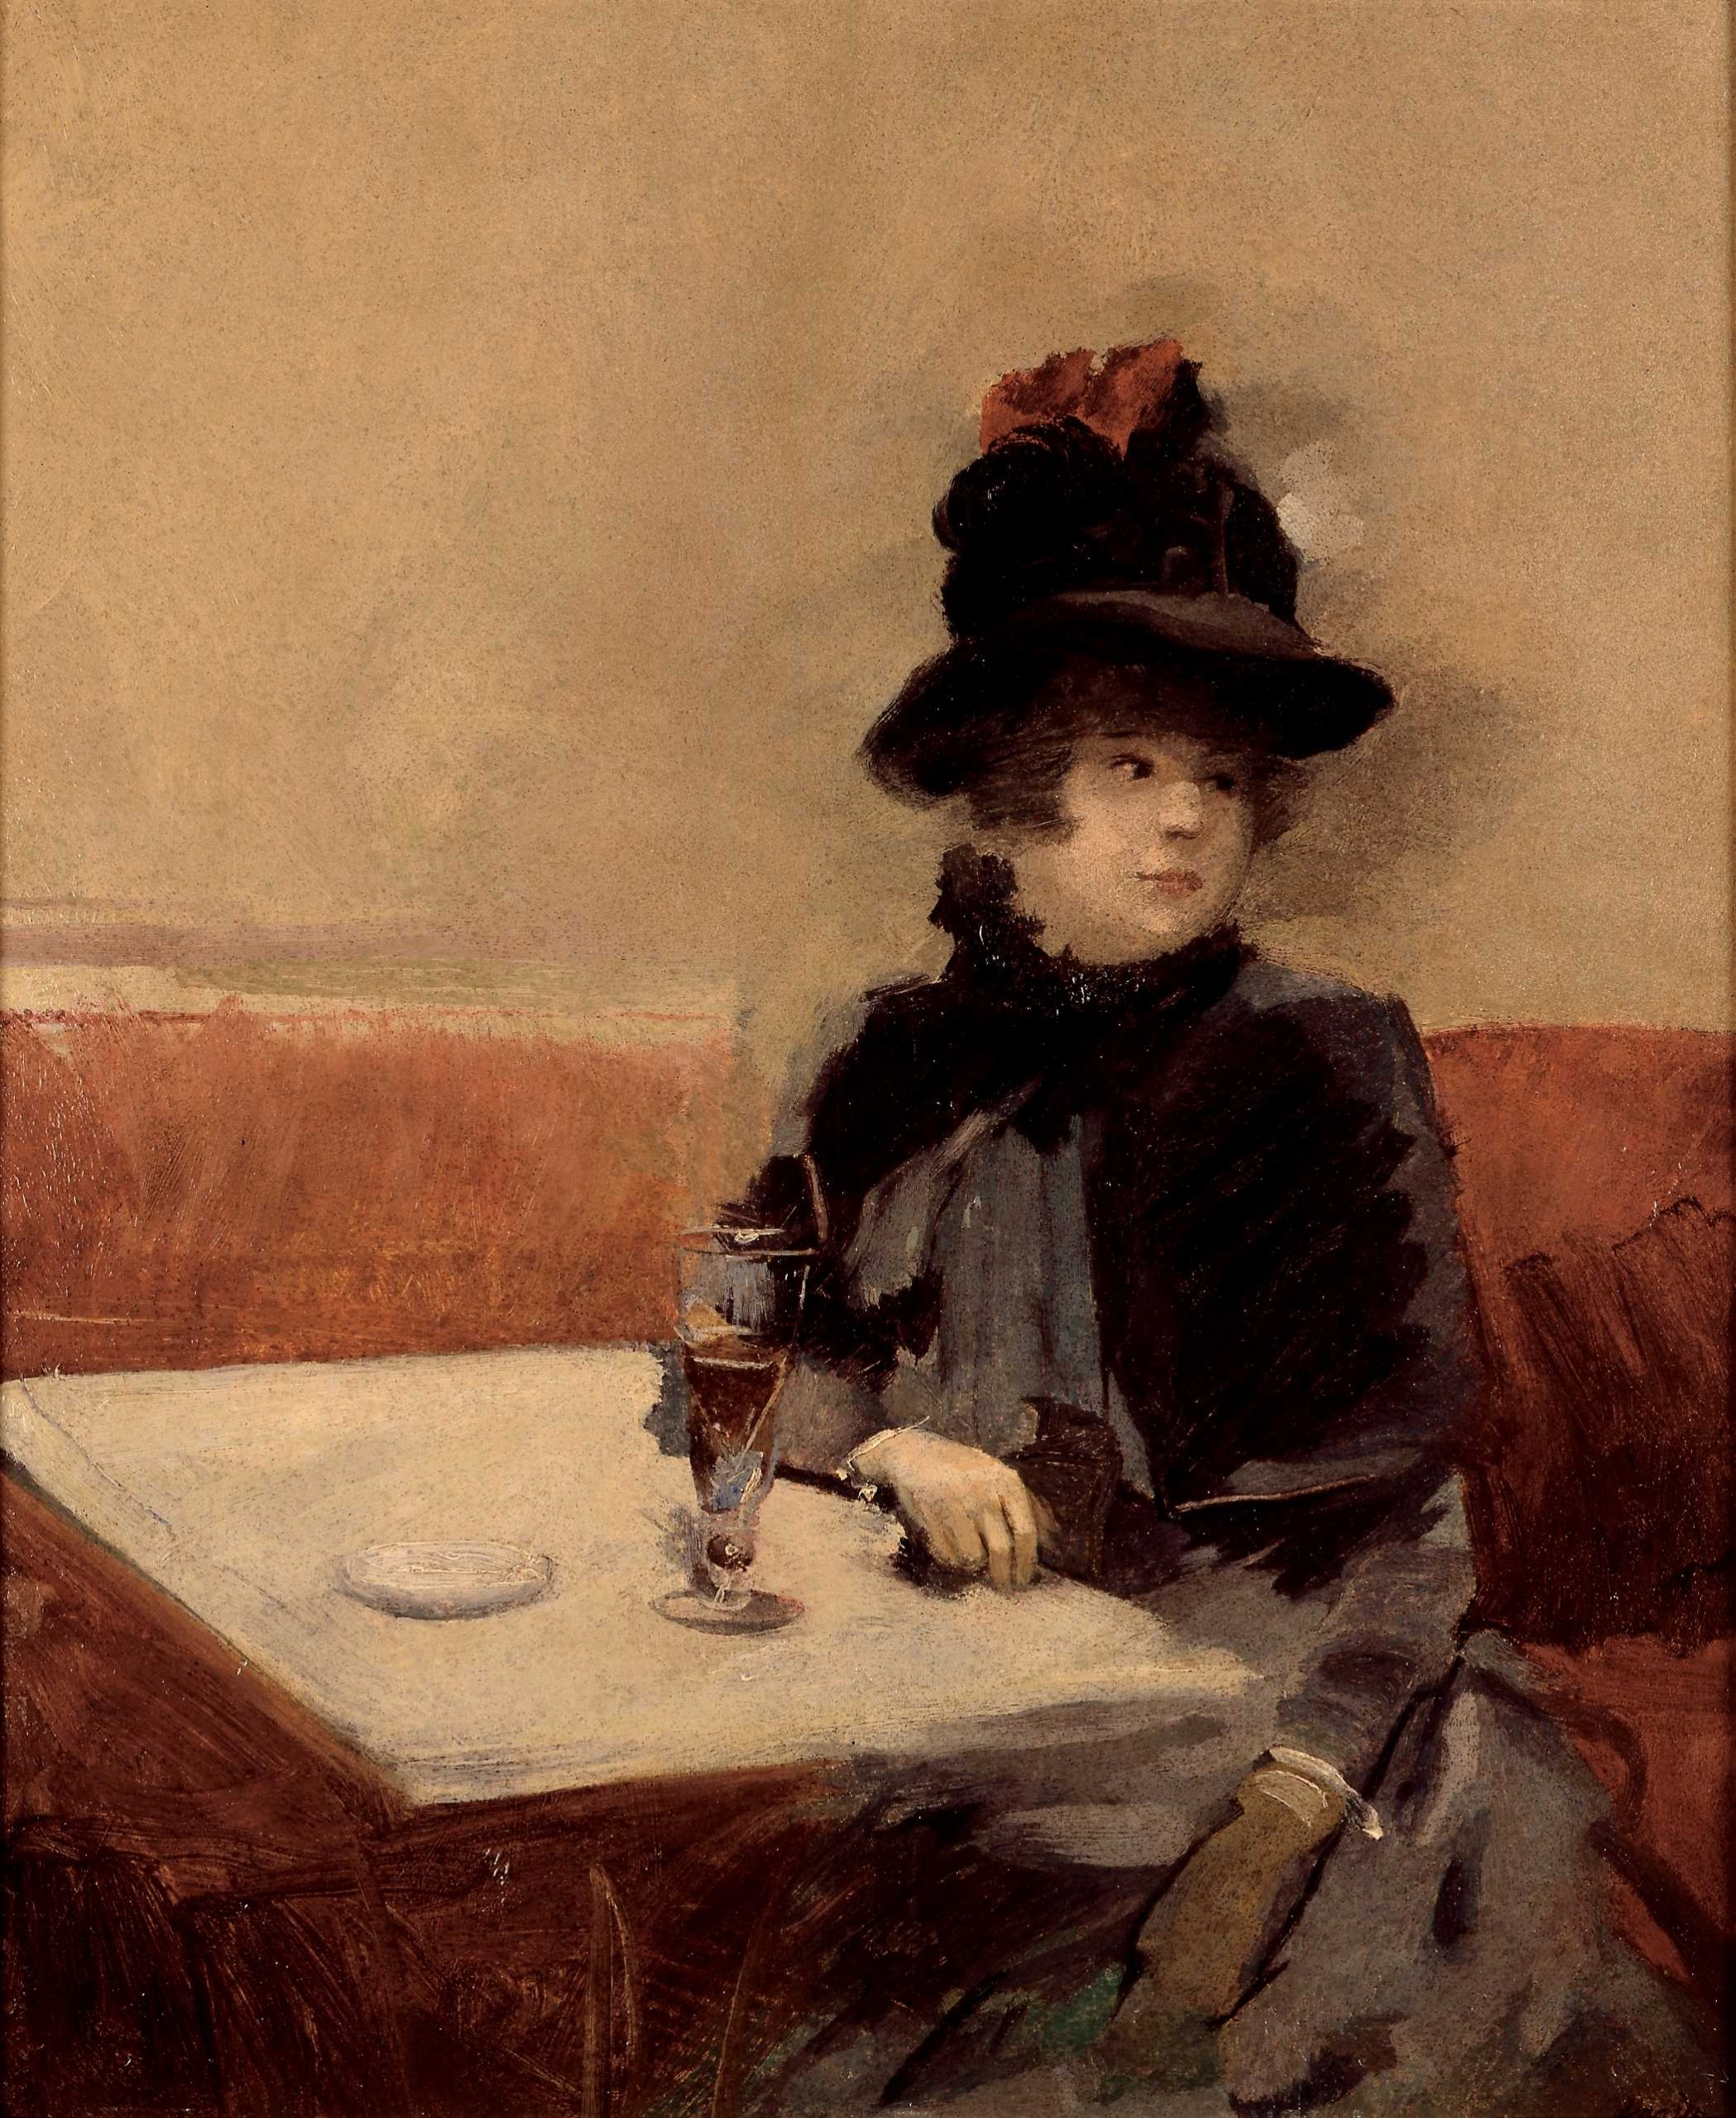 Impressionist painting of a woman in a café